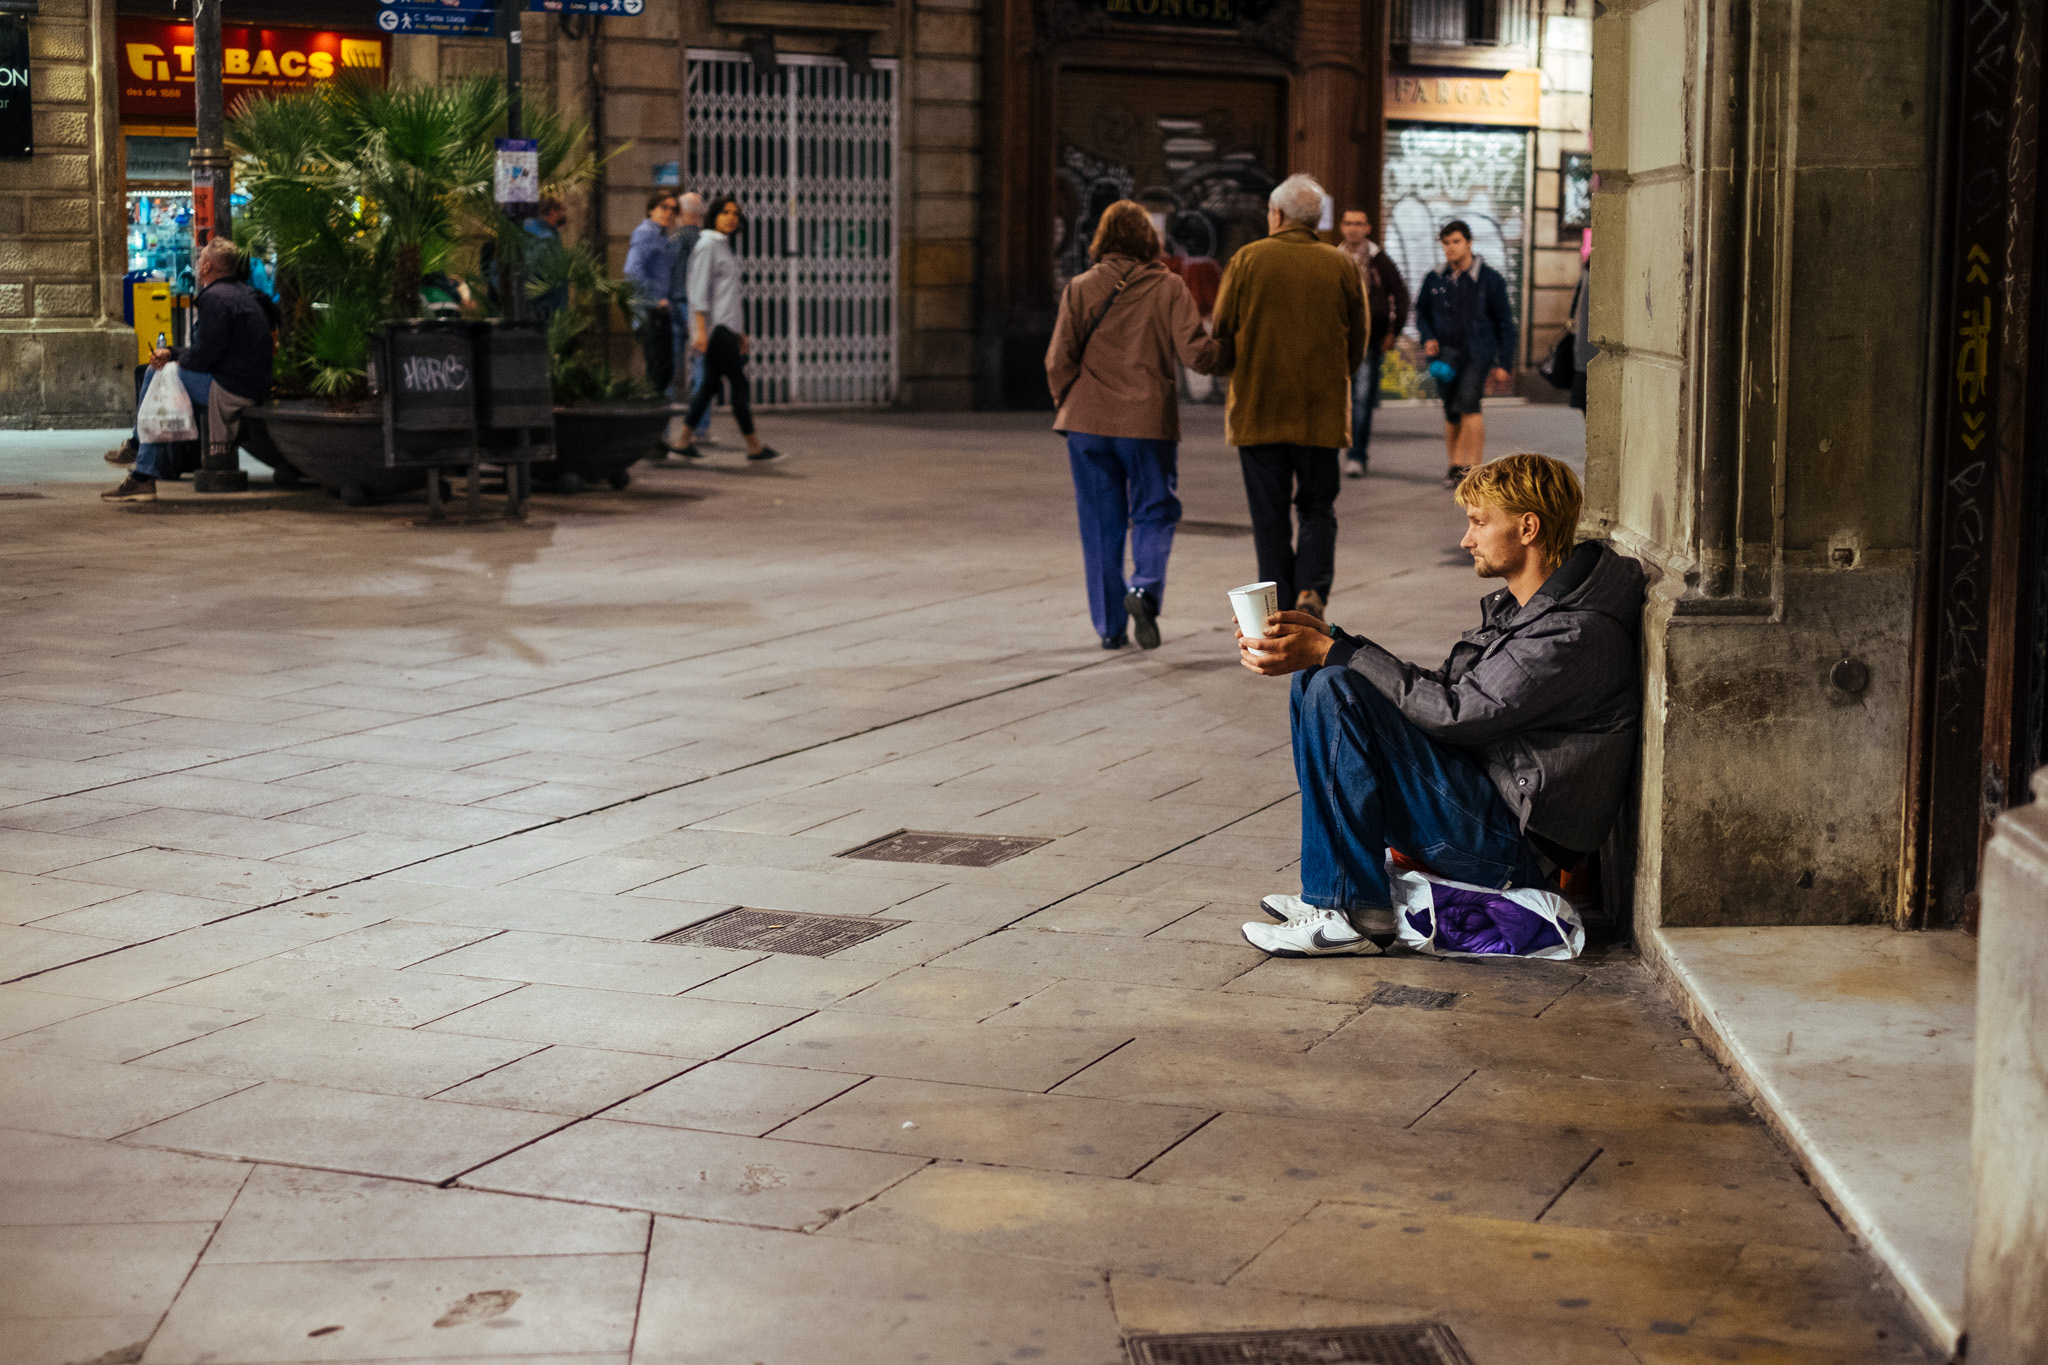 Like many of the big European cities now, homeless folks are a common sight and it saddens me to see these folks who are displaced often through conflicts and war.